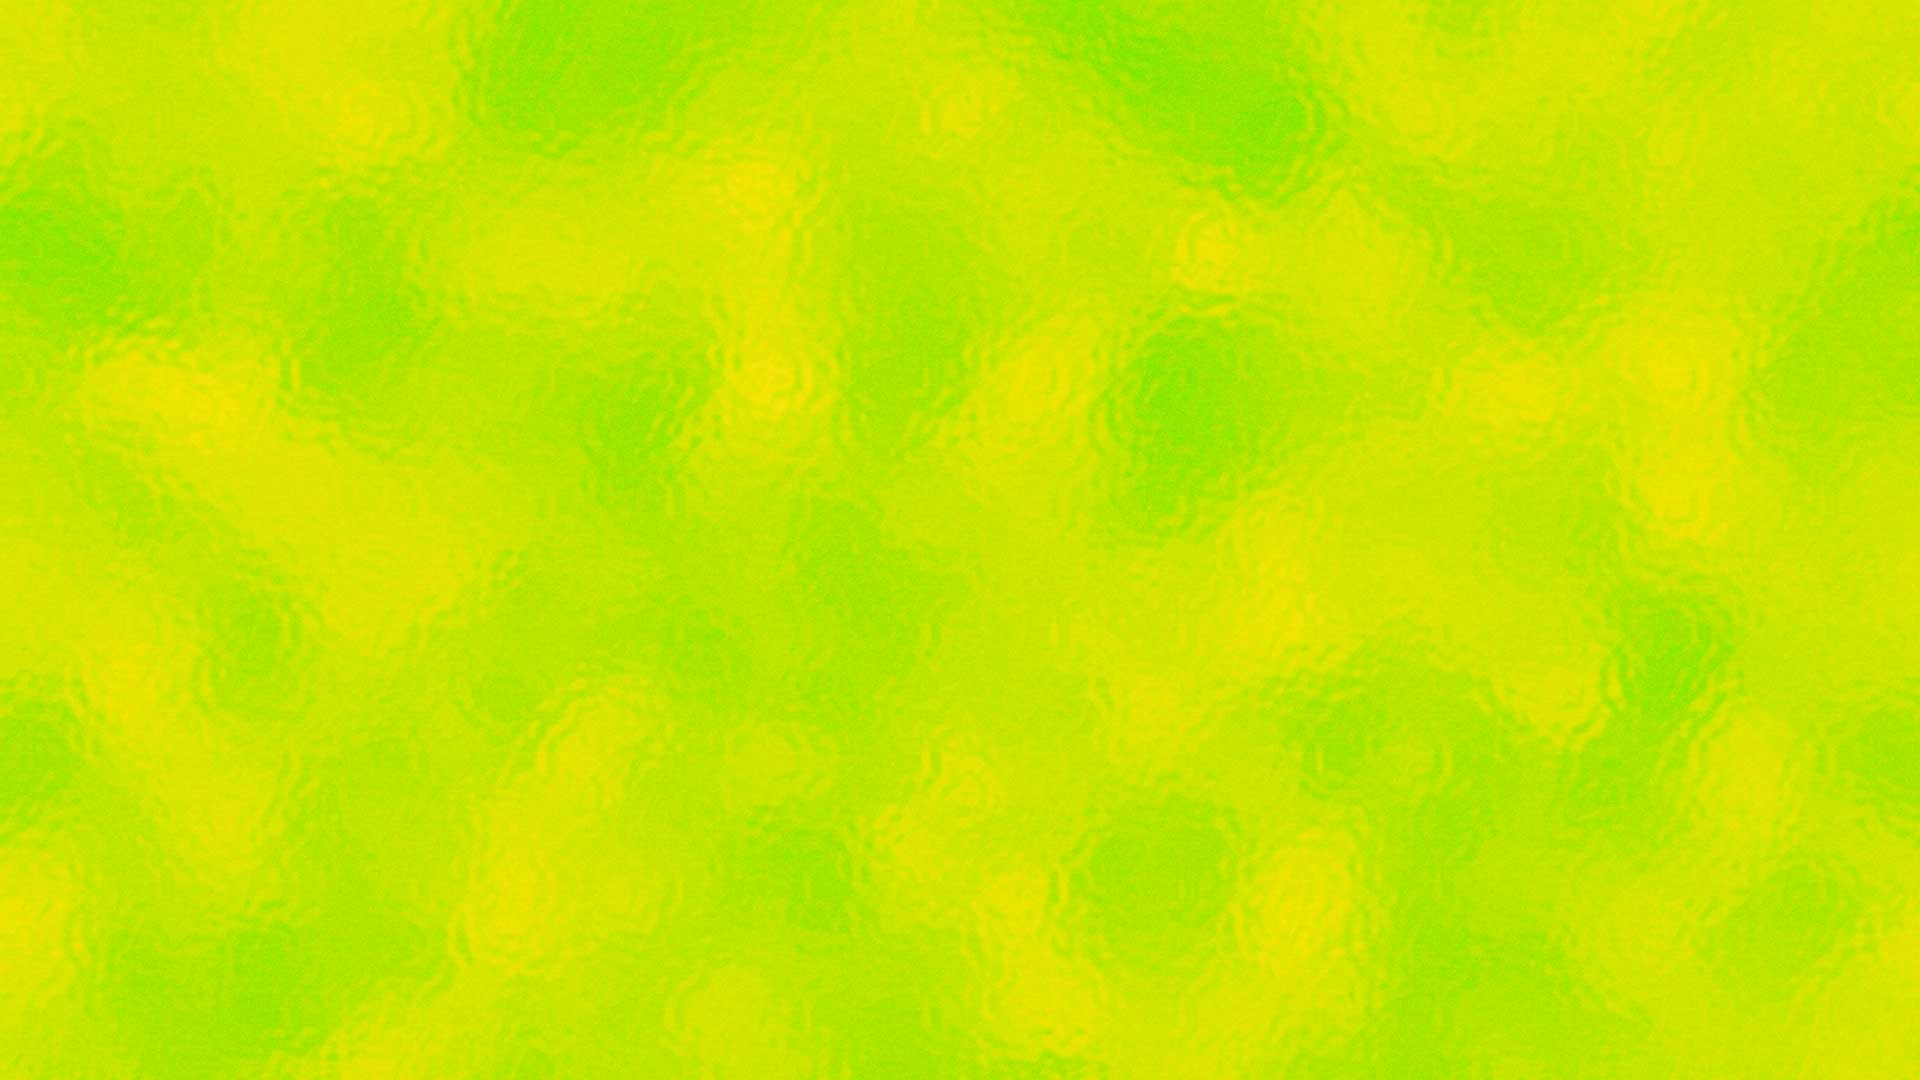 1920x1080 Yellow and Green Wallpaper - WallpaperSafari Yellow Green Wallpapers